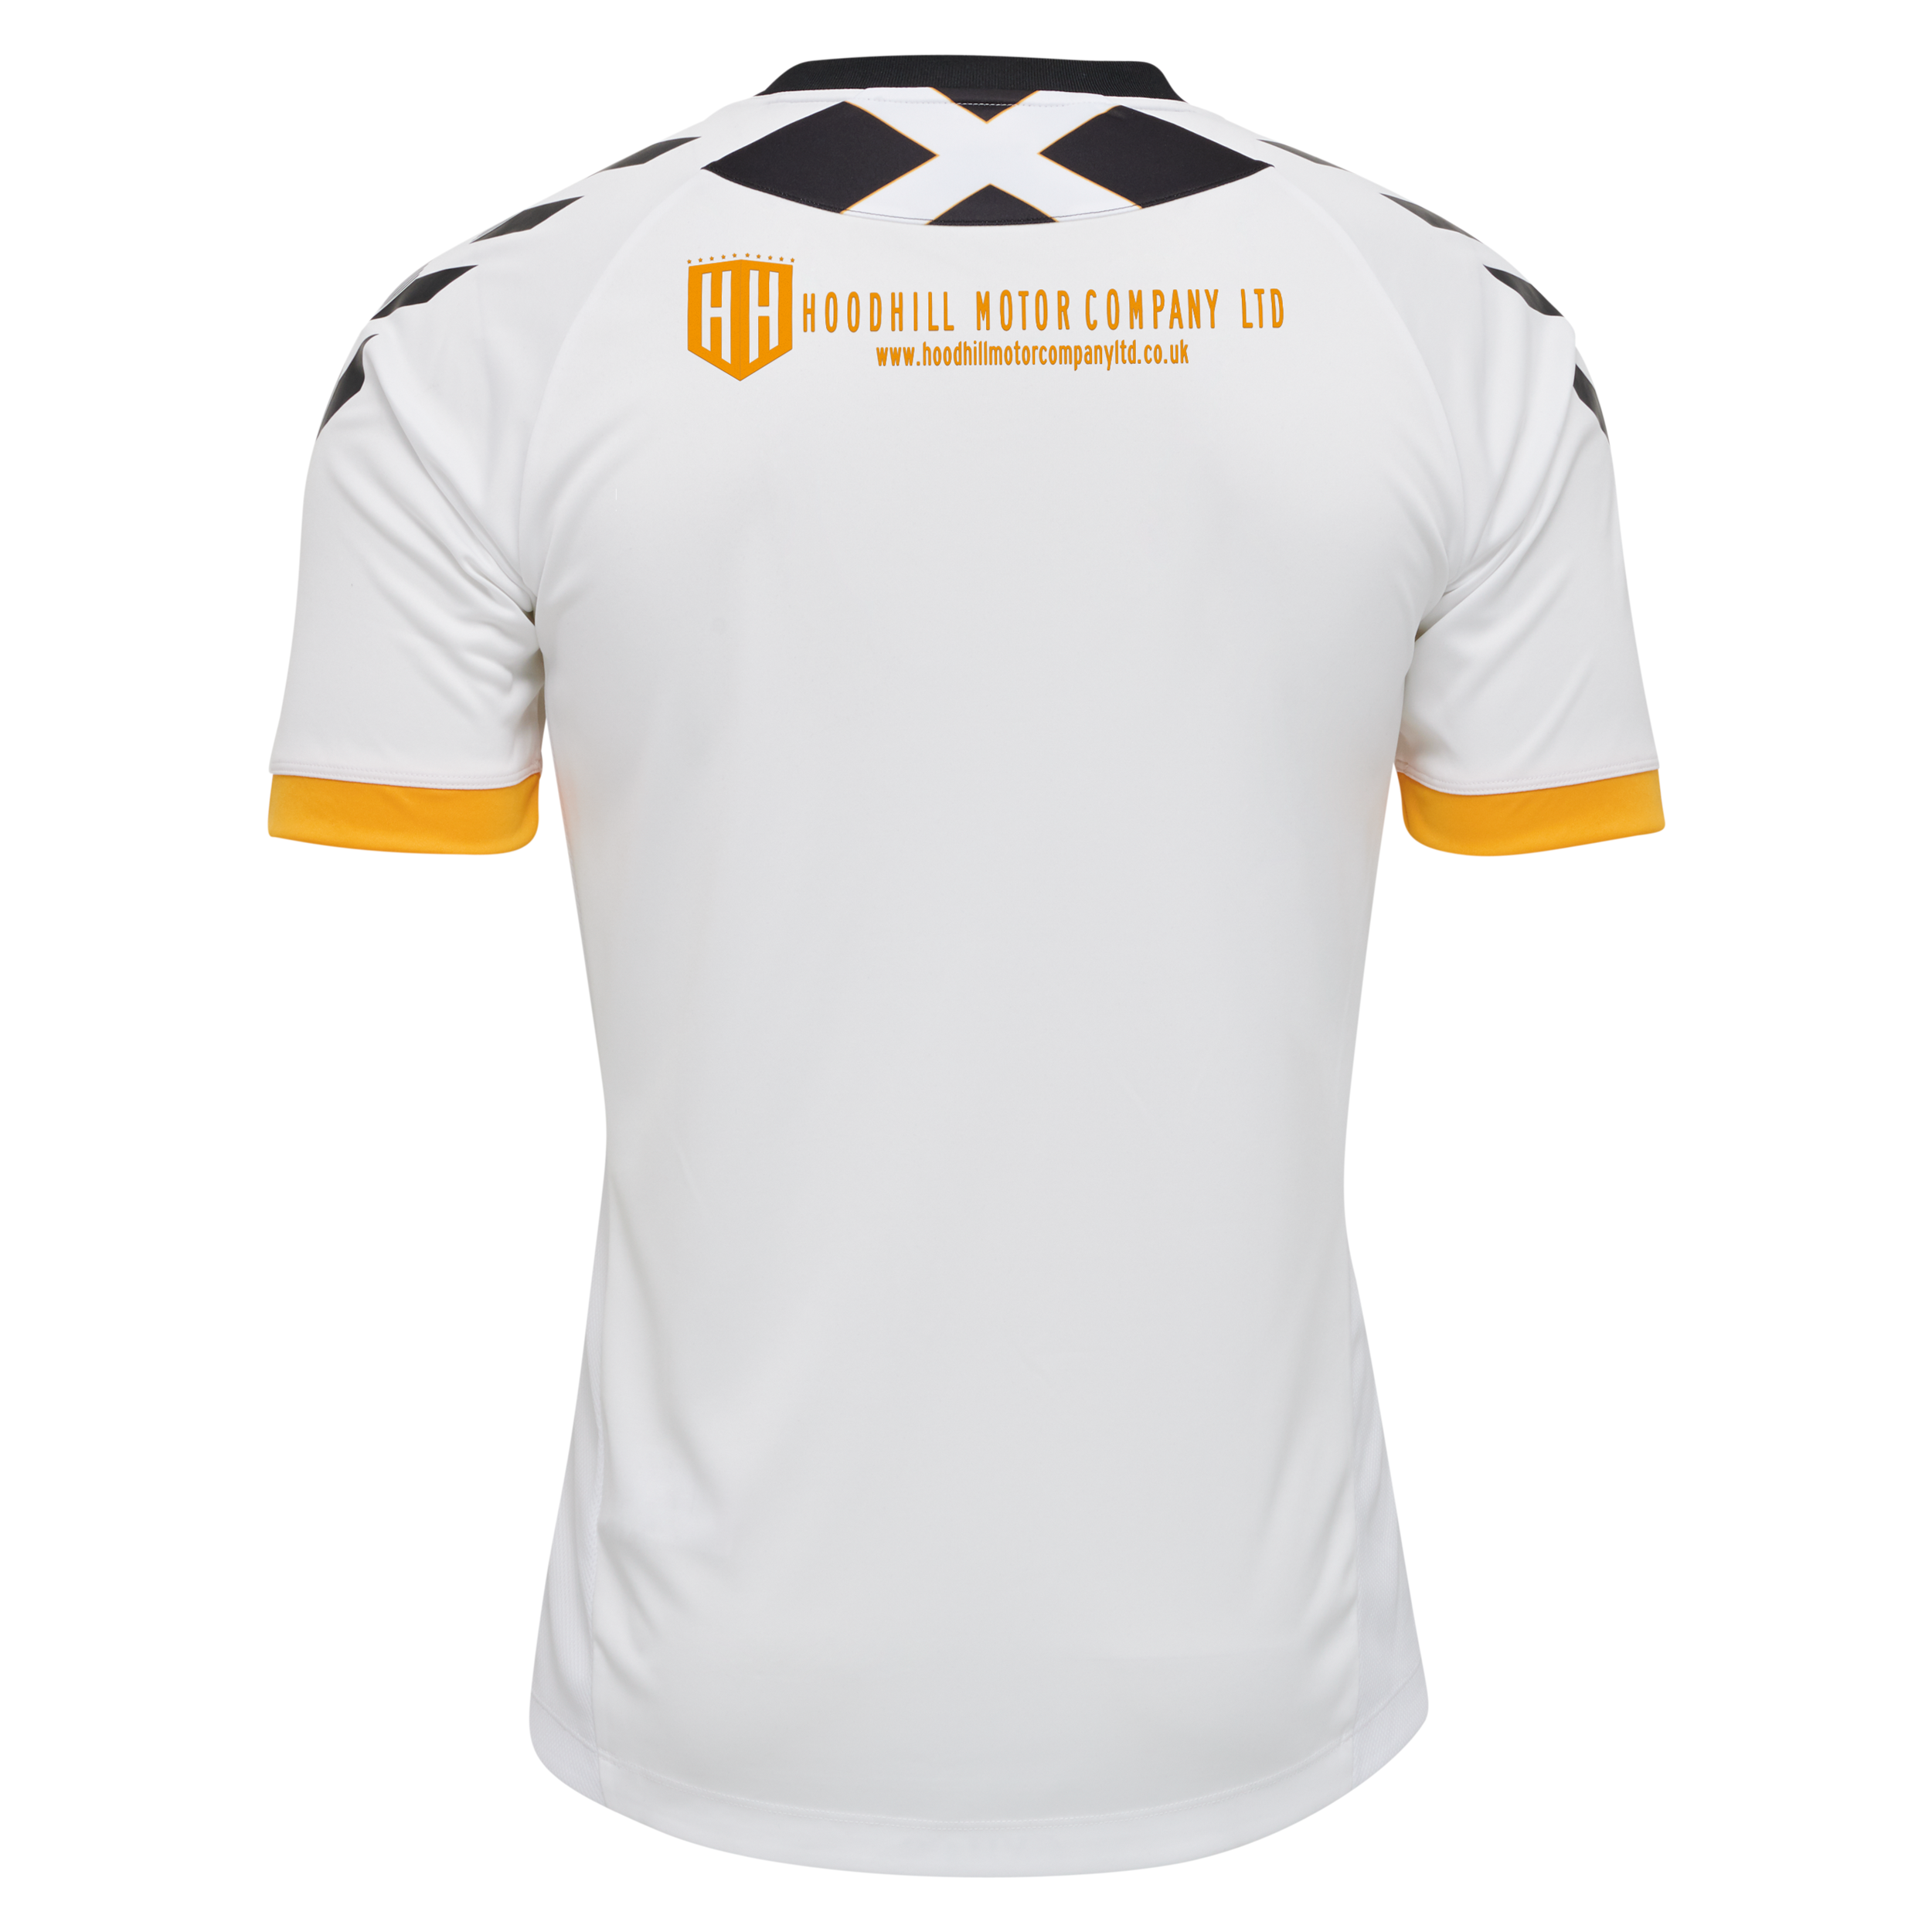 HUMMEL JUNIOR 2020-21 AWAY Shirt